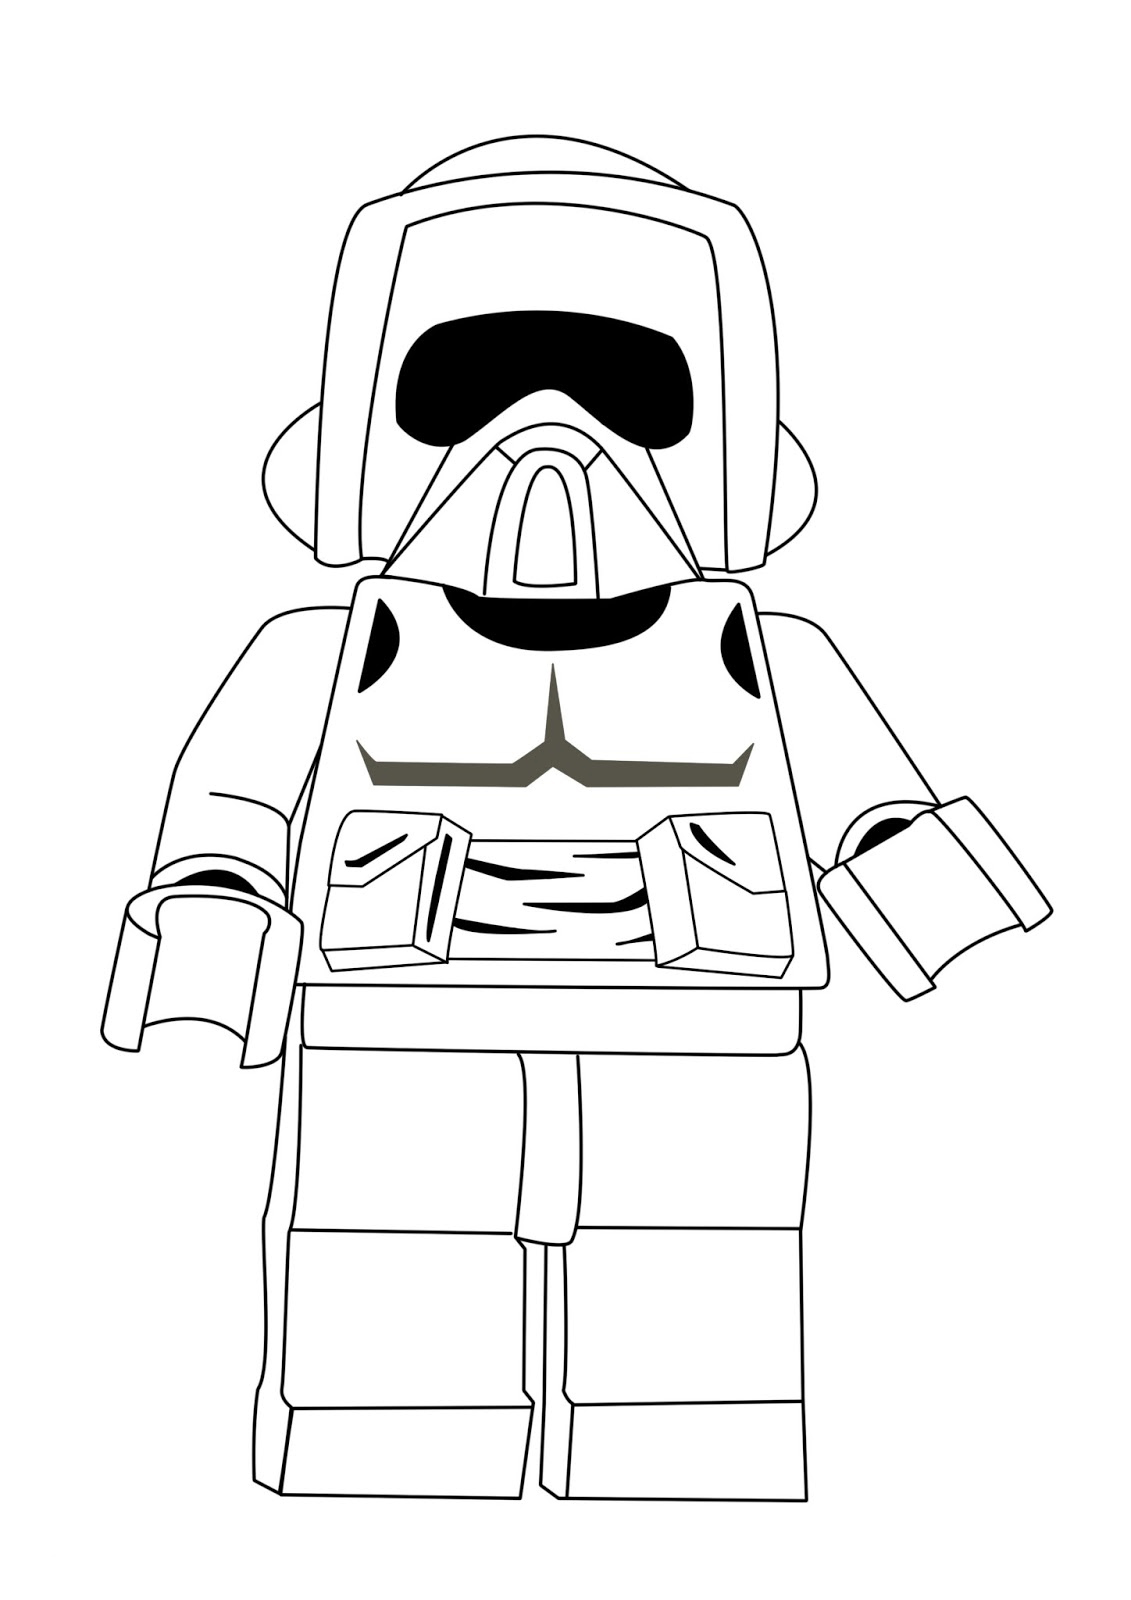 lego star wars coloring pages to print lego star wars coloring pages best coloring pages for kids print to wars pages lego coloring star